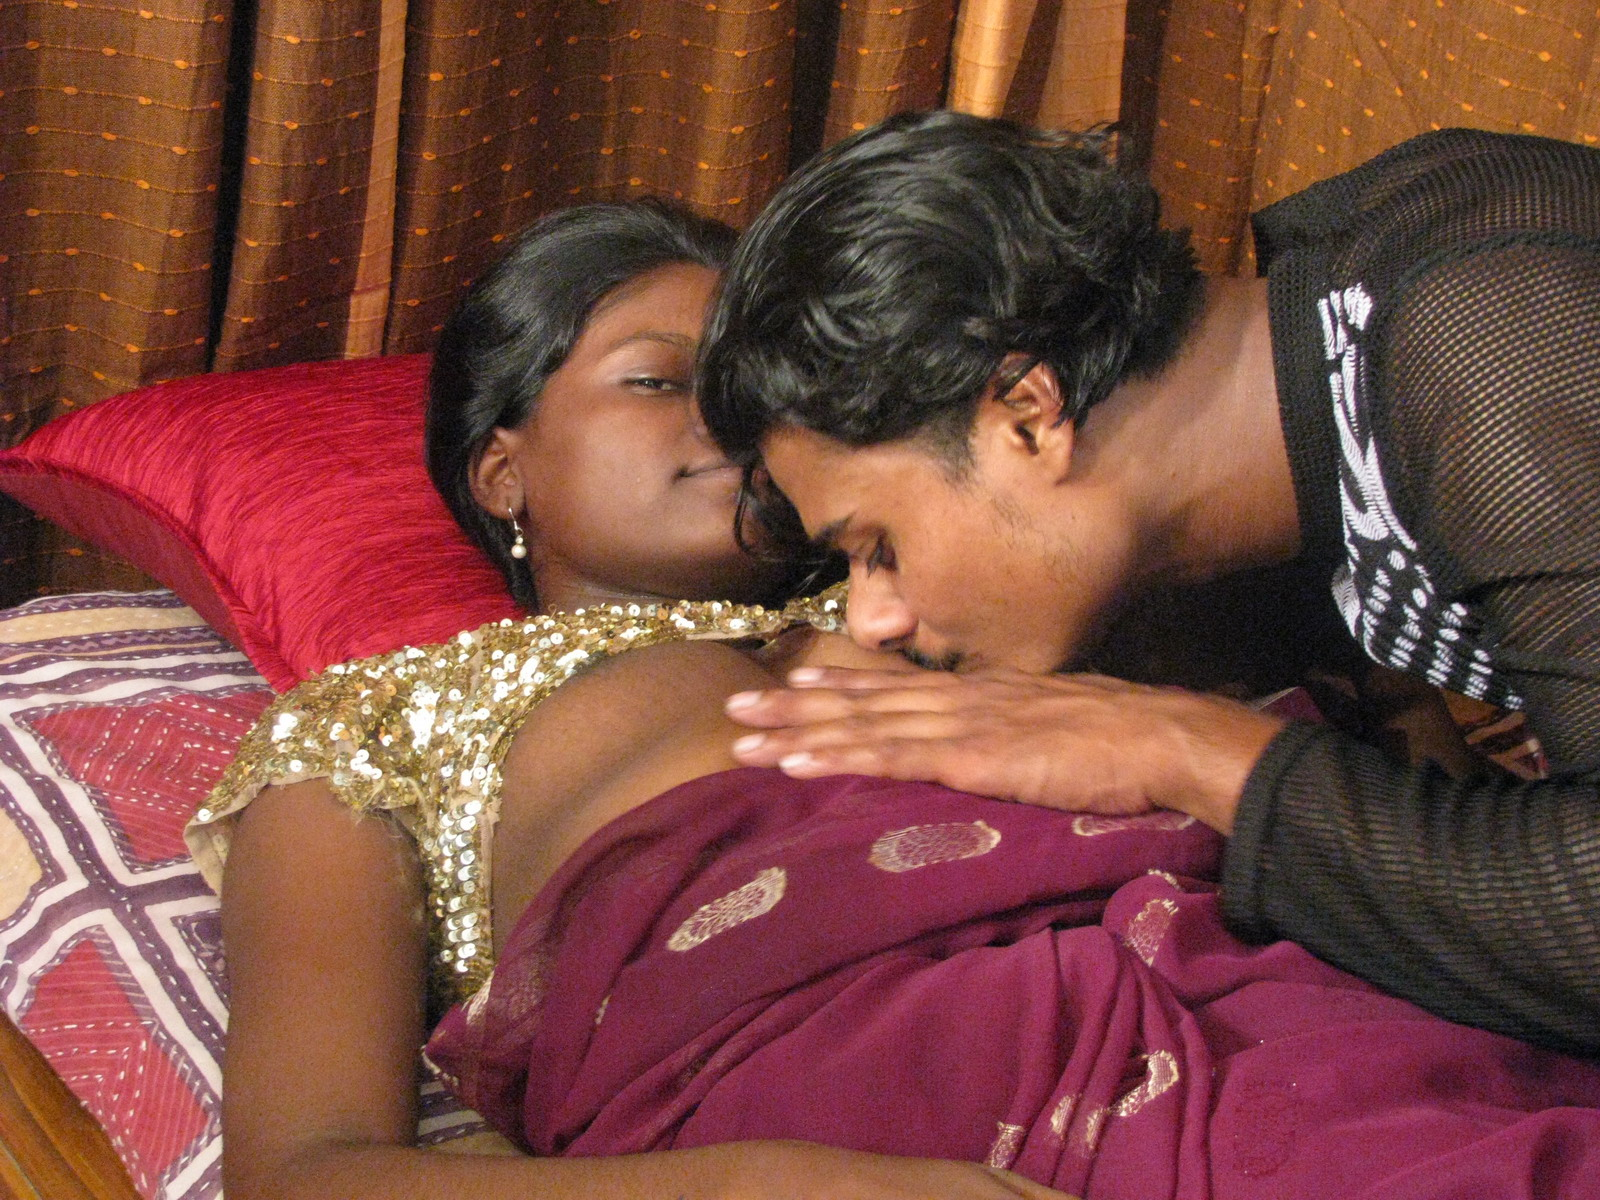 India sex workers — photo 14